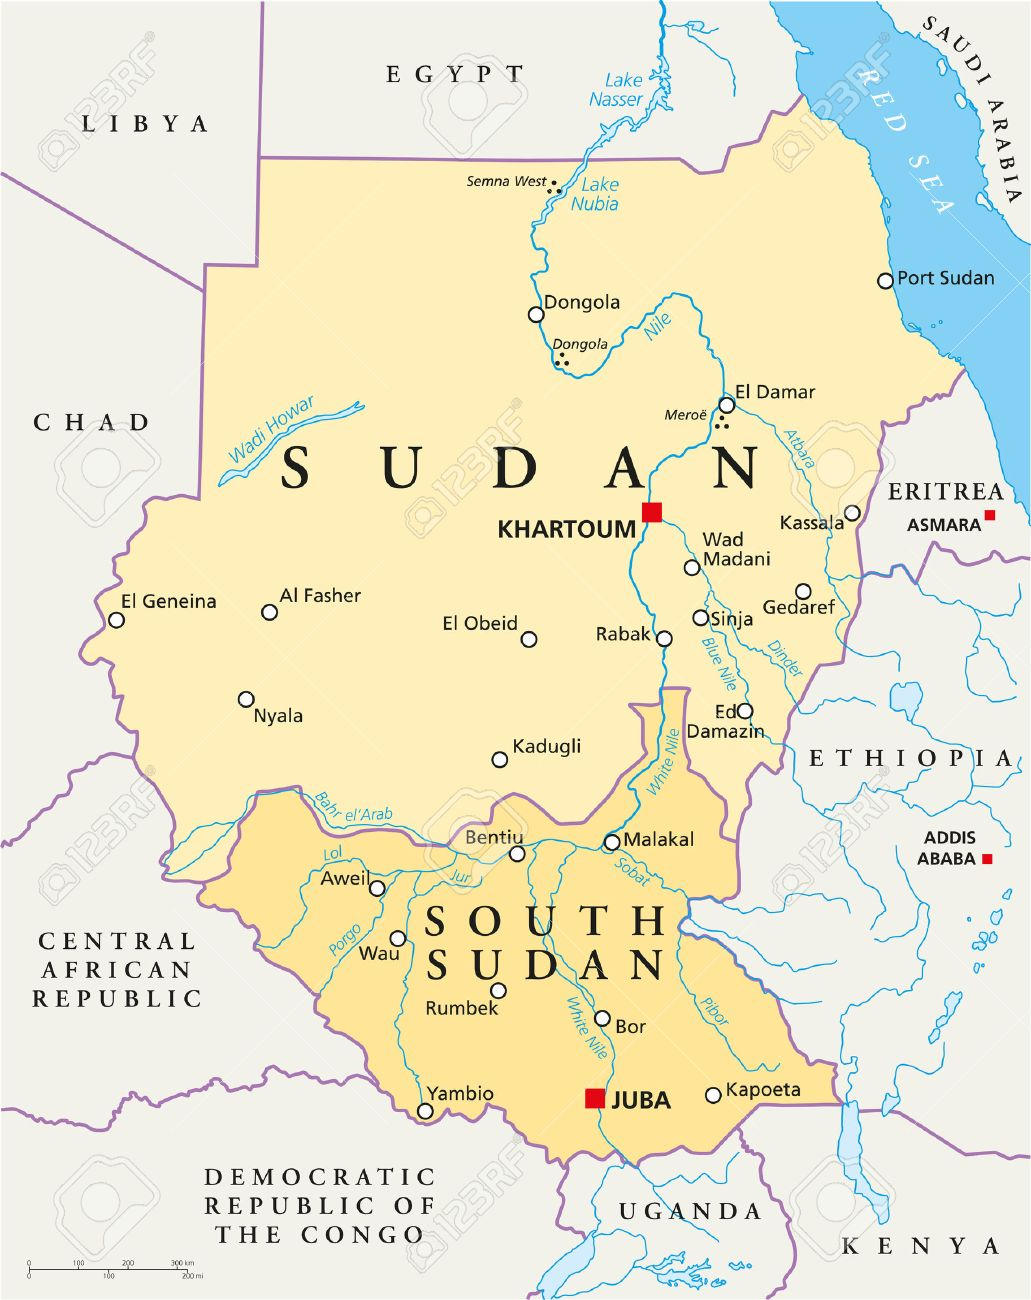 Sudan And South Sudan Political Map With Capitals Khartoum And ...